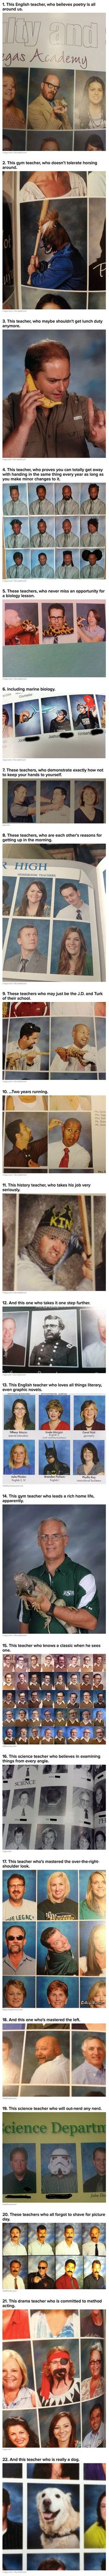 We have rounded up some geeky teachers who are making the most of their normally boring yearbook photos.